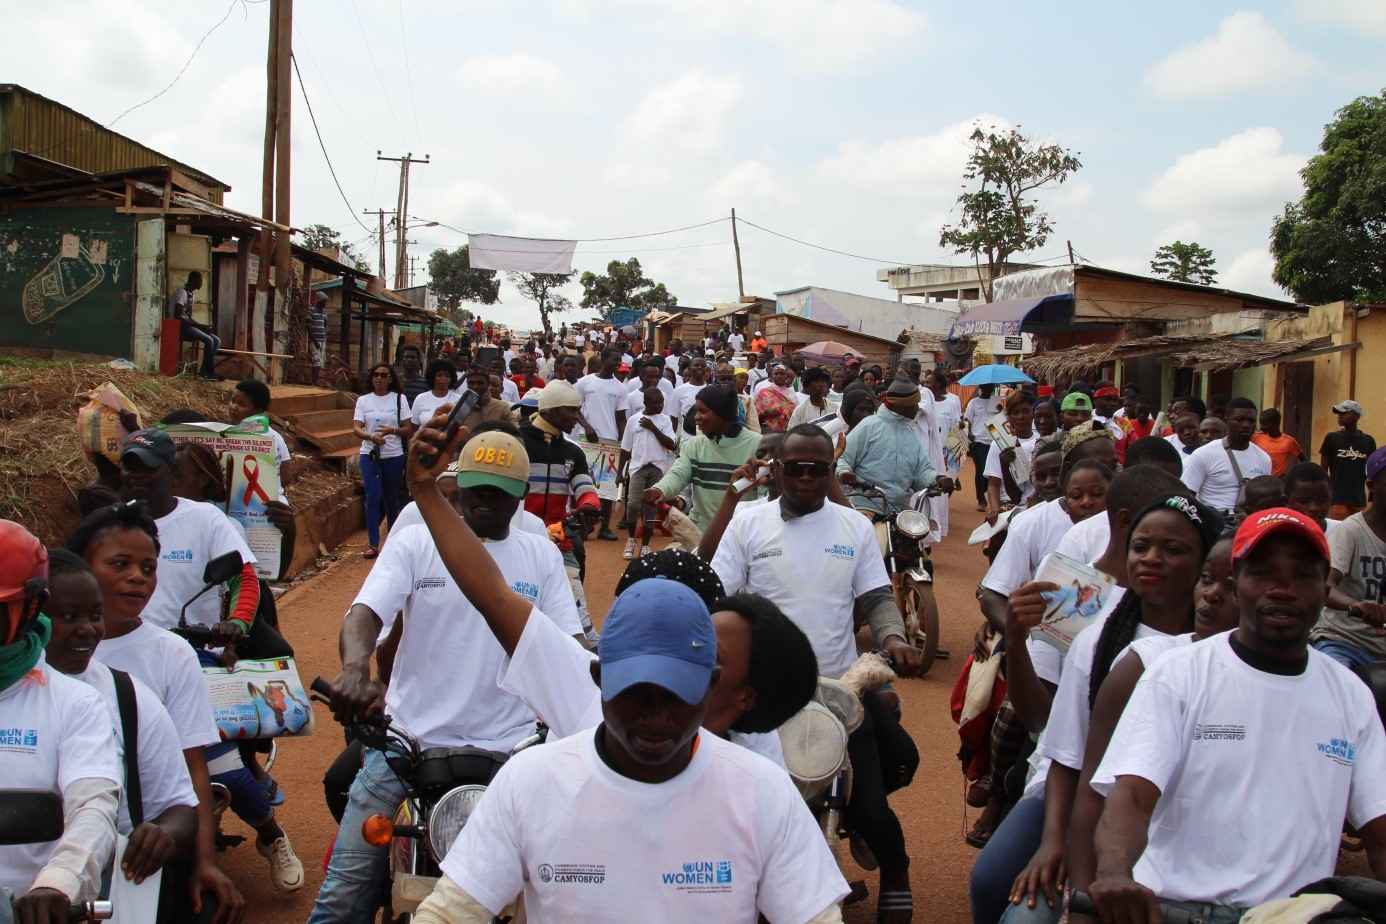 UN WOMEN SUPPORTS AN HIV FEMINIZATION CAMPAIGN TO SENSITIZE YOUTHS OF DIMAKO